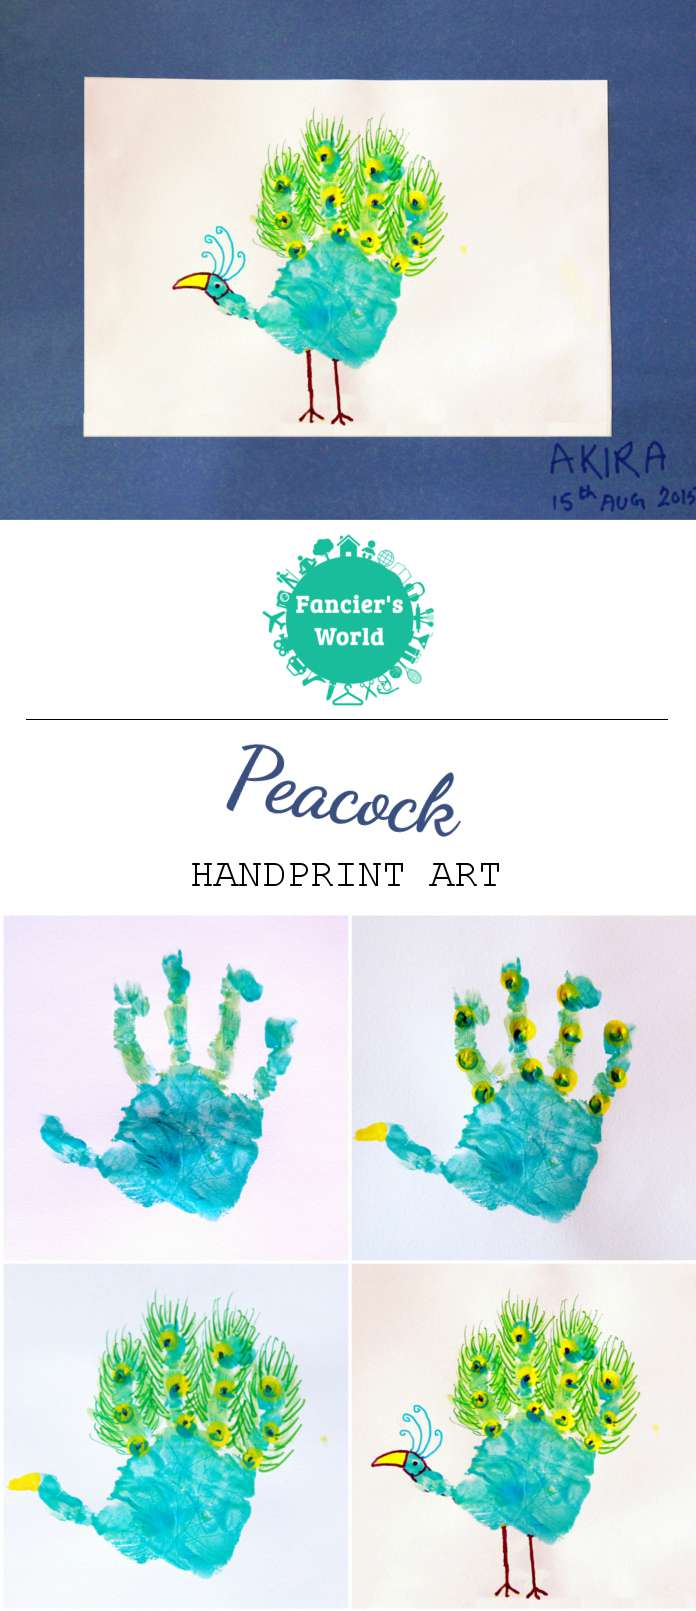 peacock crafts and activities handprint peacock 15th august fancier s world 5145